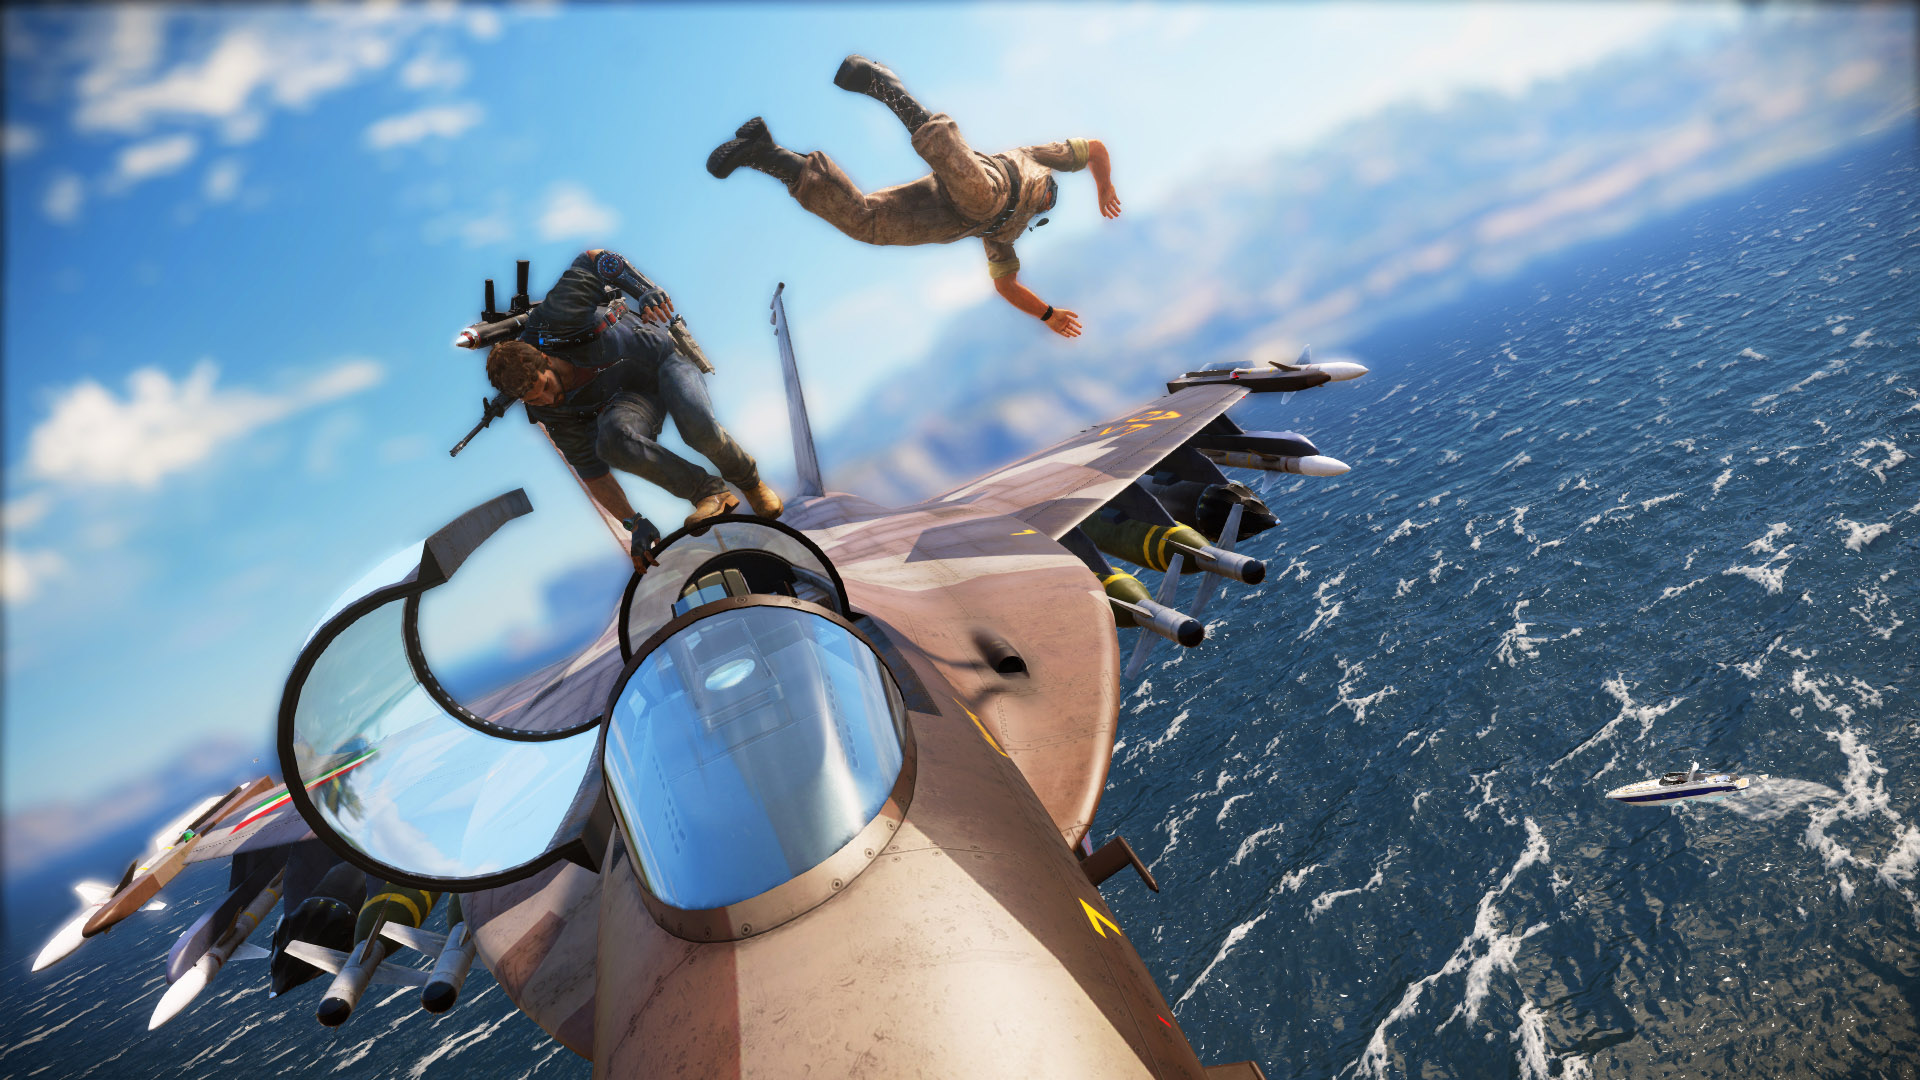 Wallpaper Download Just Cause 2 Hd Game Wallpapers Pictures